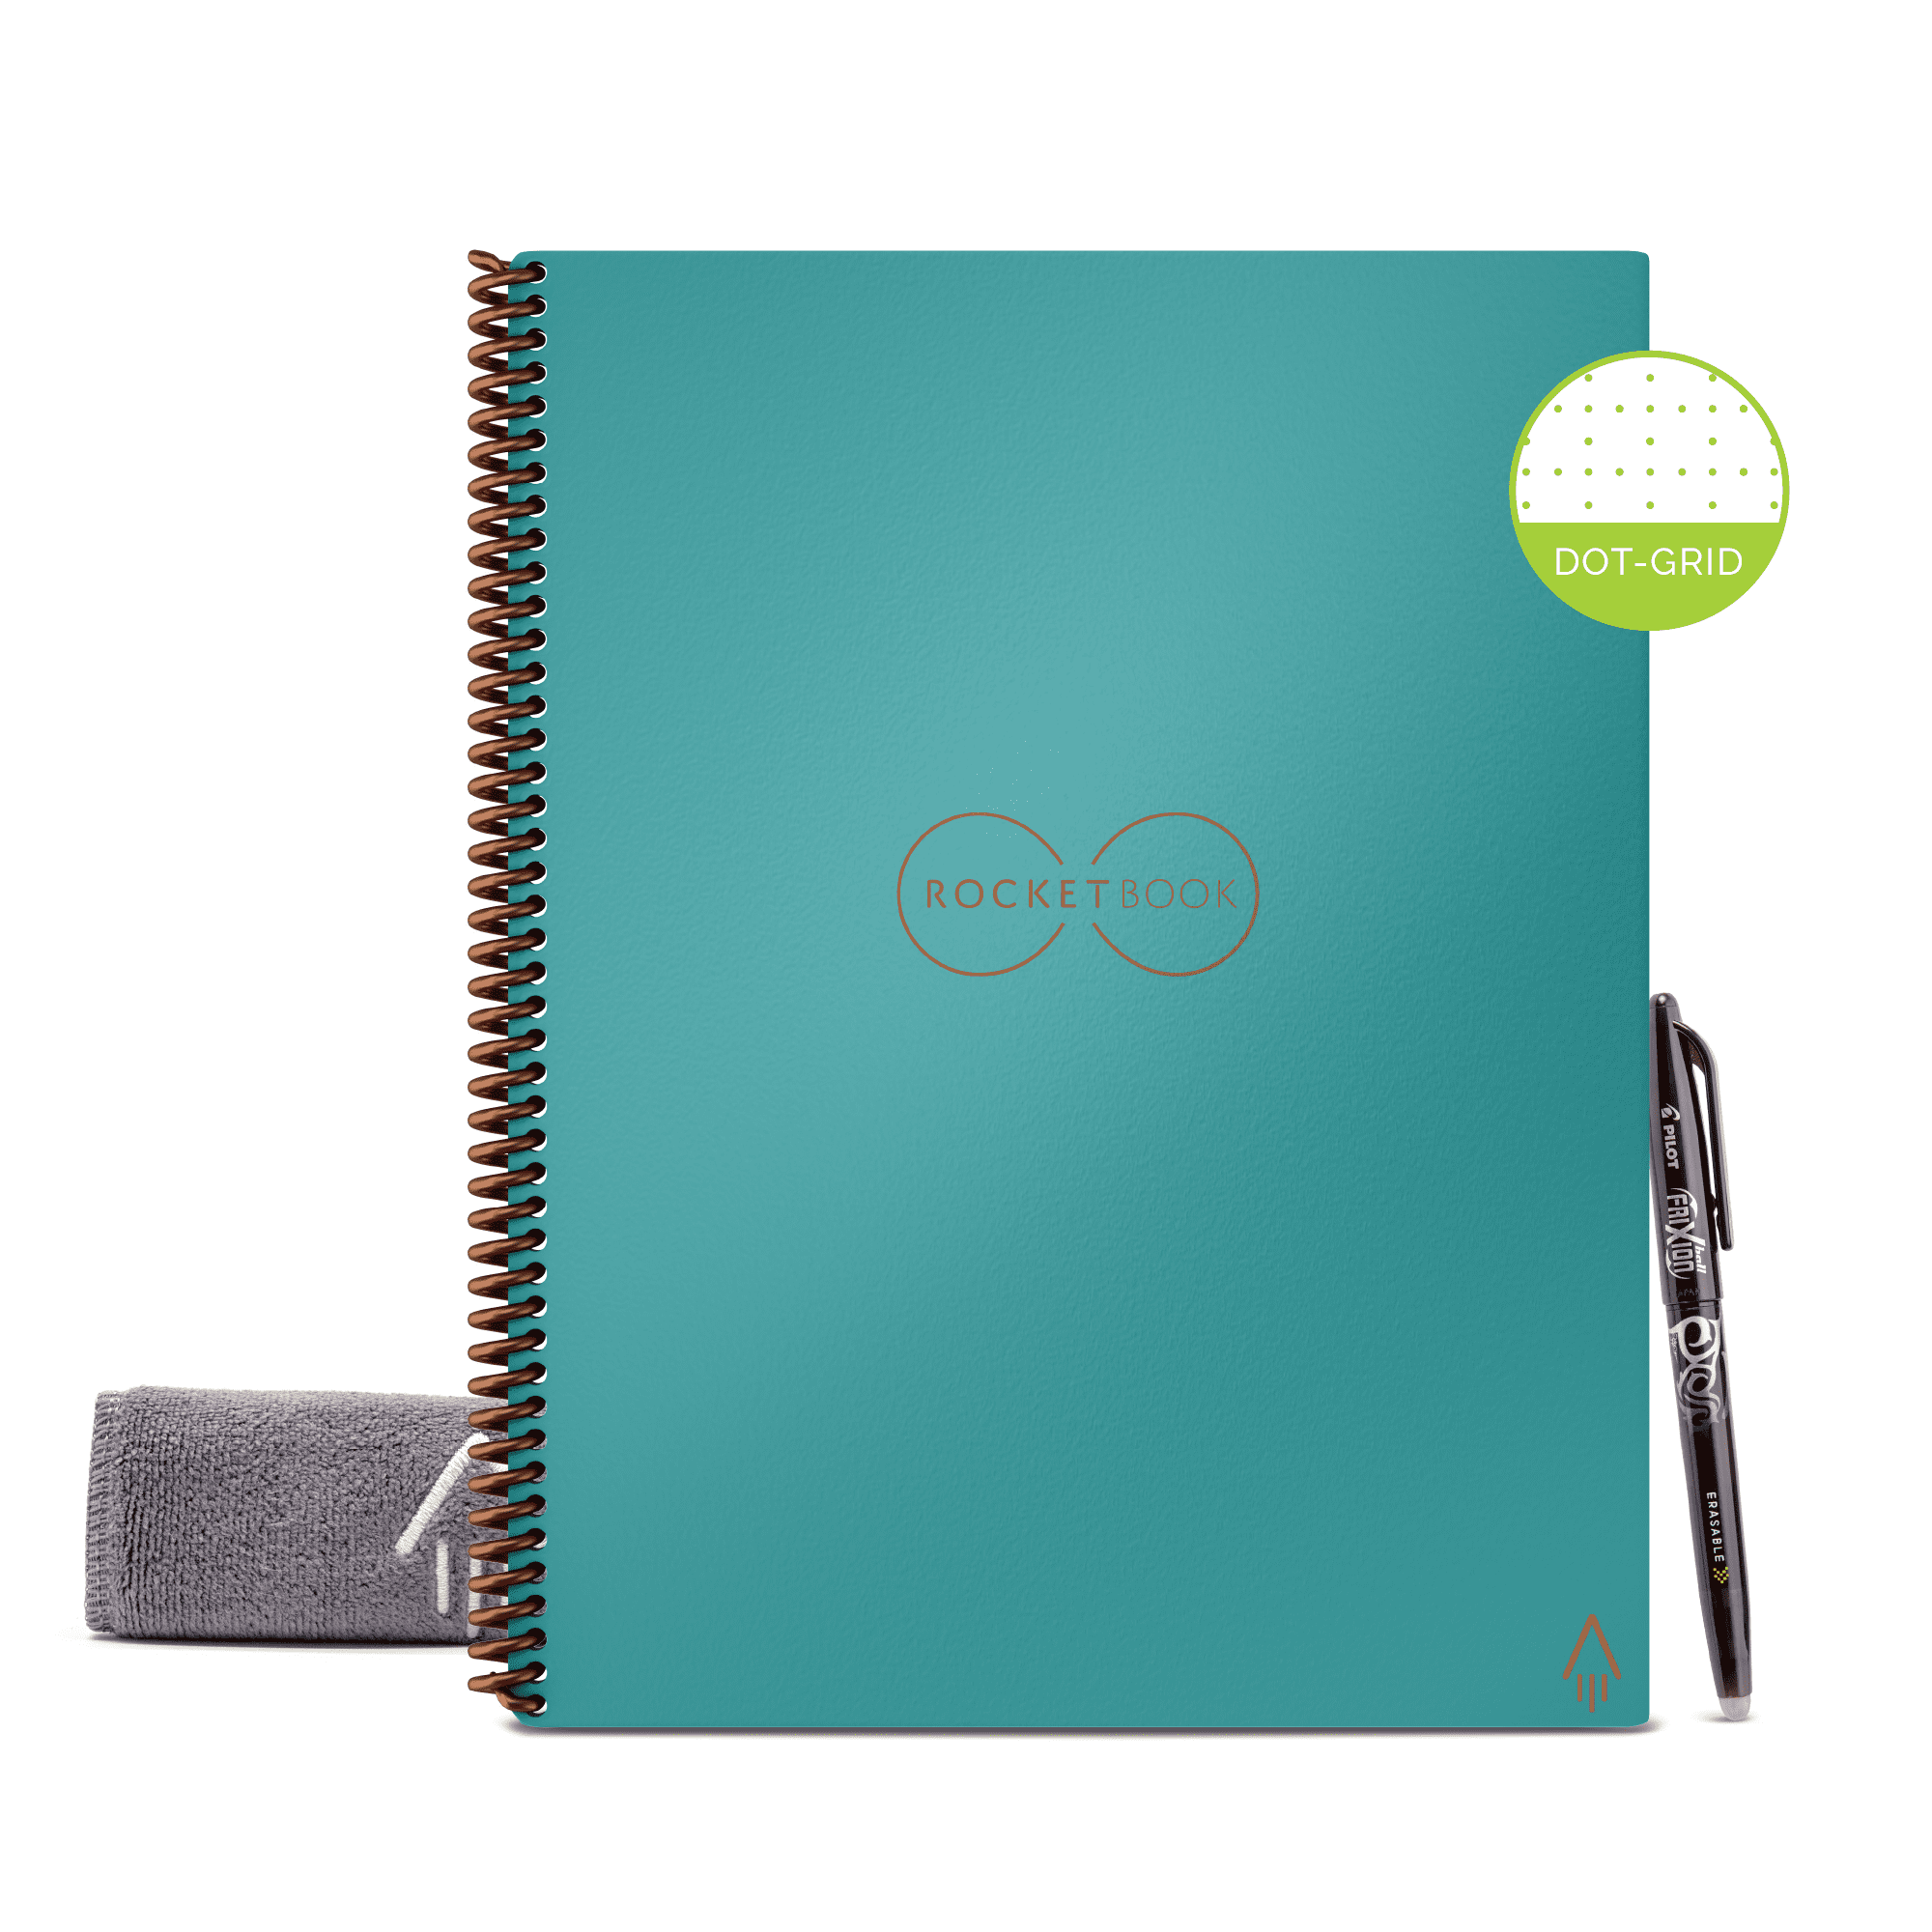 "Rocketbook Core Smart Notebook, Dot-Grid, 32 Pages, 8.5""x11"", Teal"